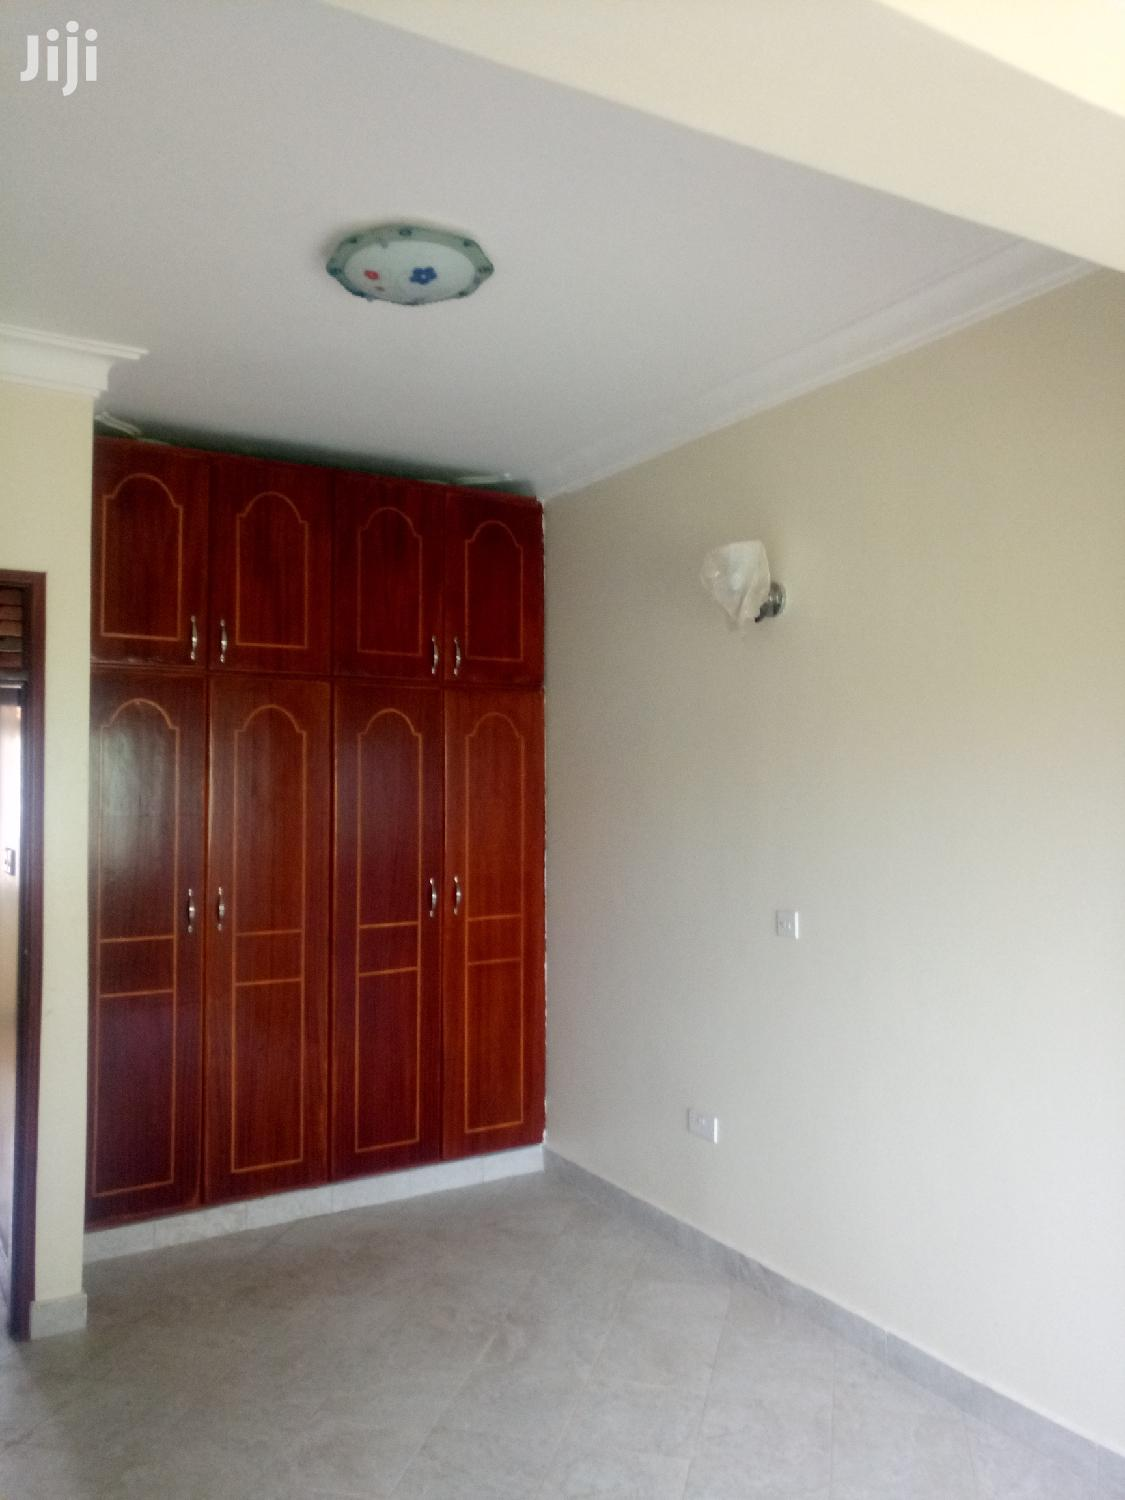 Three Bedrooms Duplex House for Rent in Kireka | Houses & Apartments For Rent for sale in Kampala, Central Region, Uganda